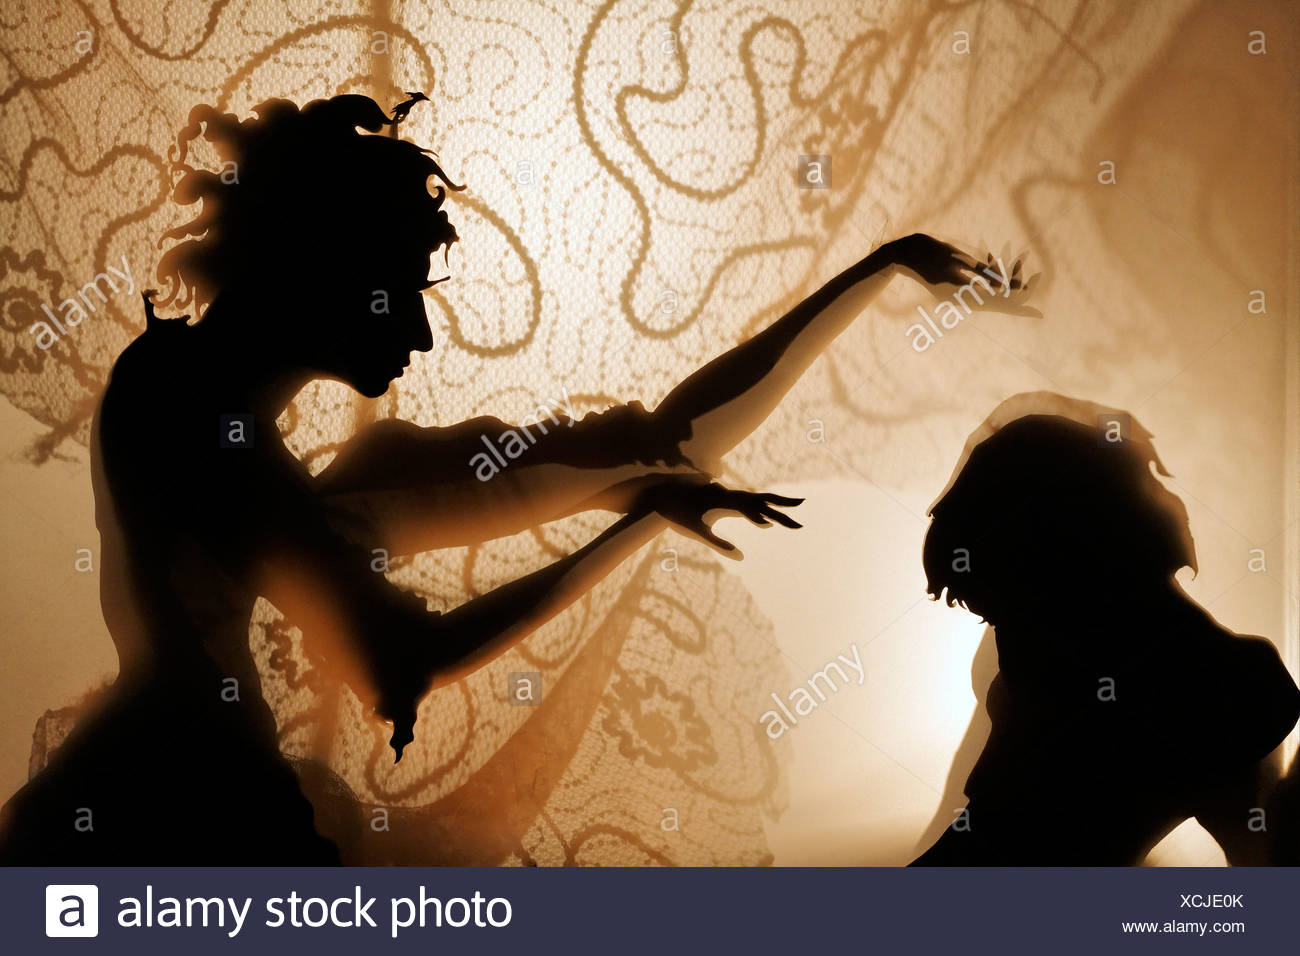 Woman bewitches a man, projection of silhouette figures on an illuminated curtain, shadow theater, tour Kunstakademie Art - Stock Image